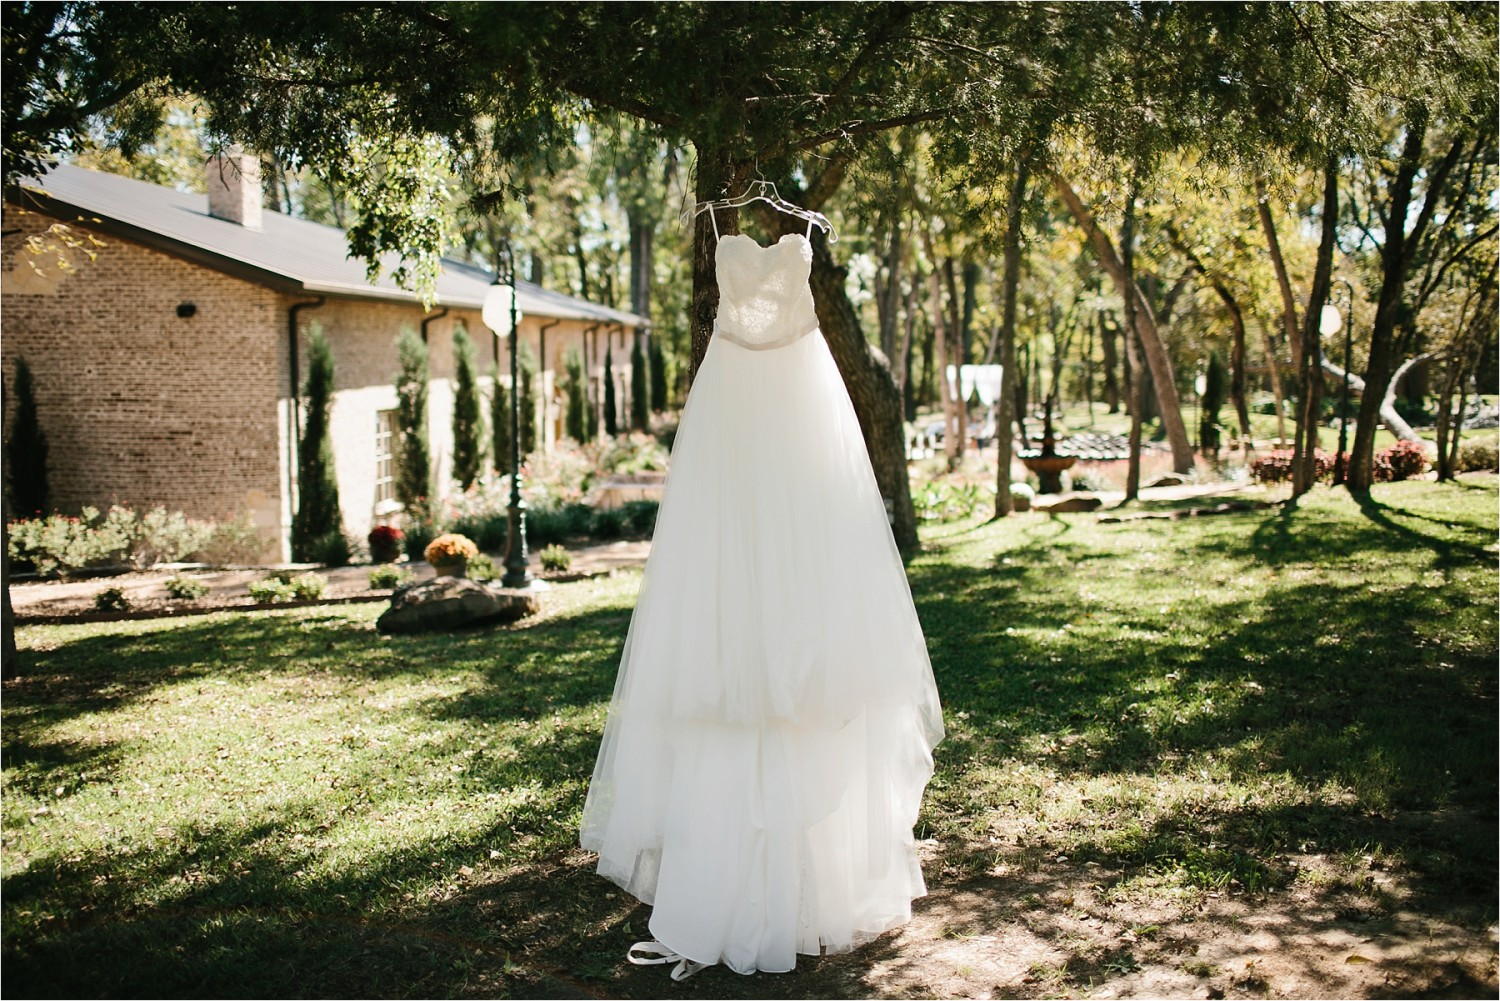 brad-lara-__-a-grey-and-blush-pink-intimate-wedding-at-hidden-waters-event-center-in-waxahachie-tx-by-north-texas-wedding-photographer-rachel-meagan-photography-_-003